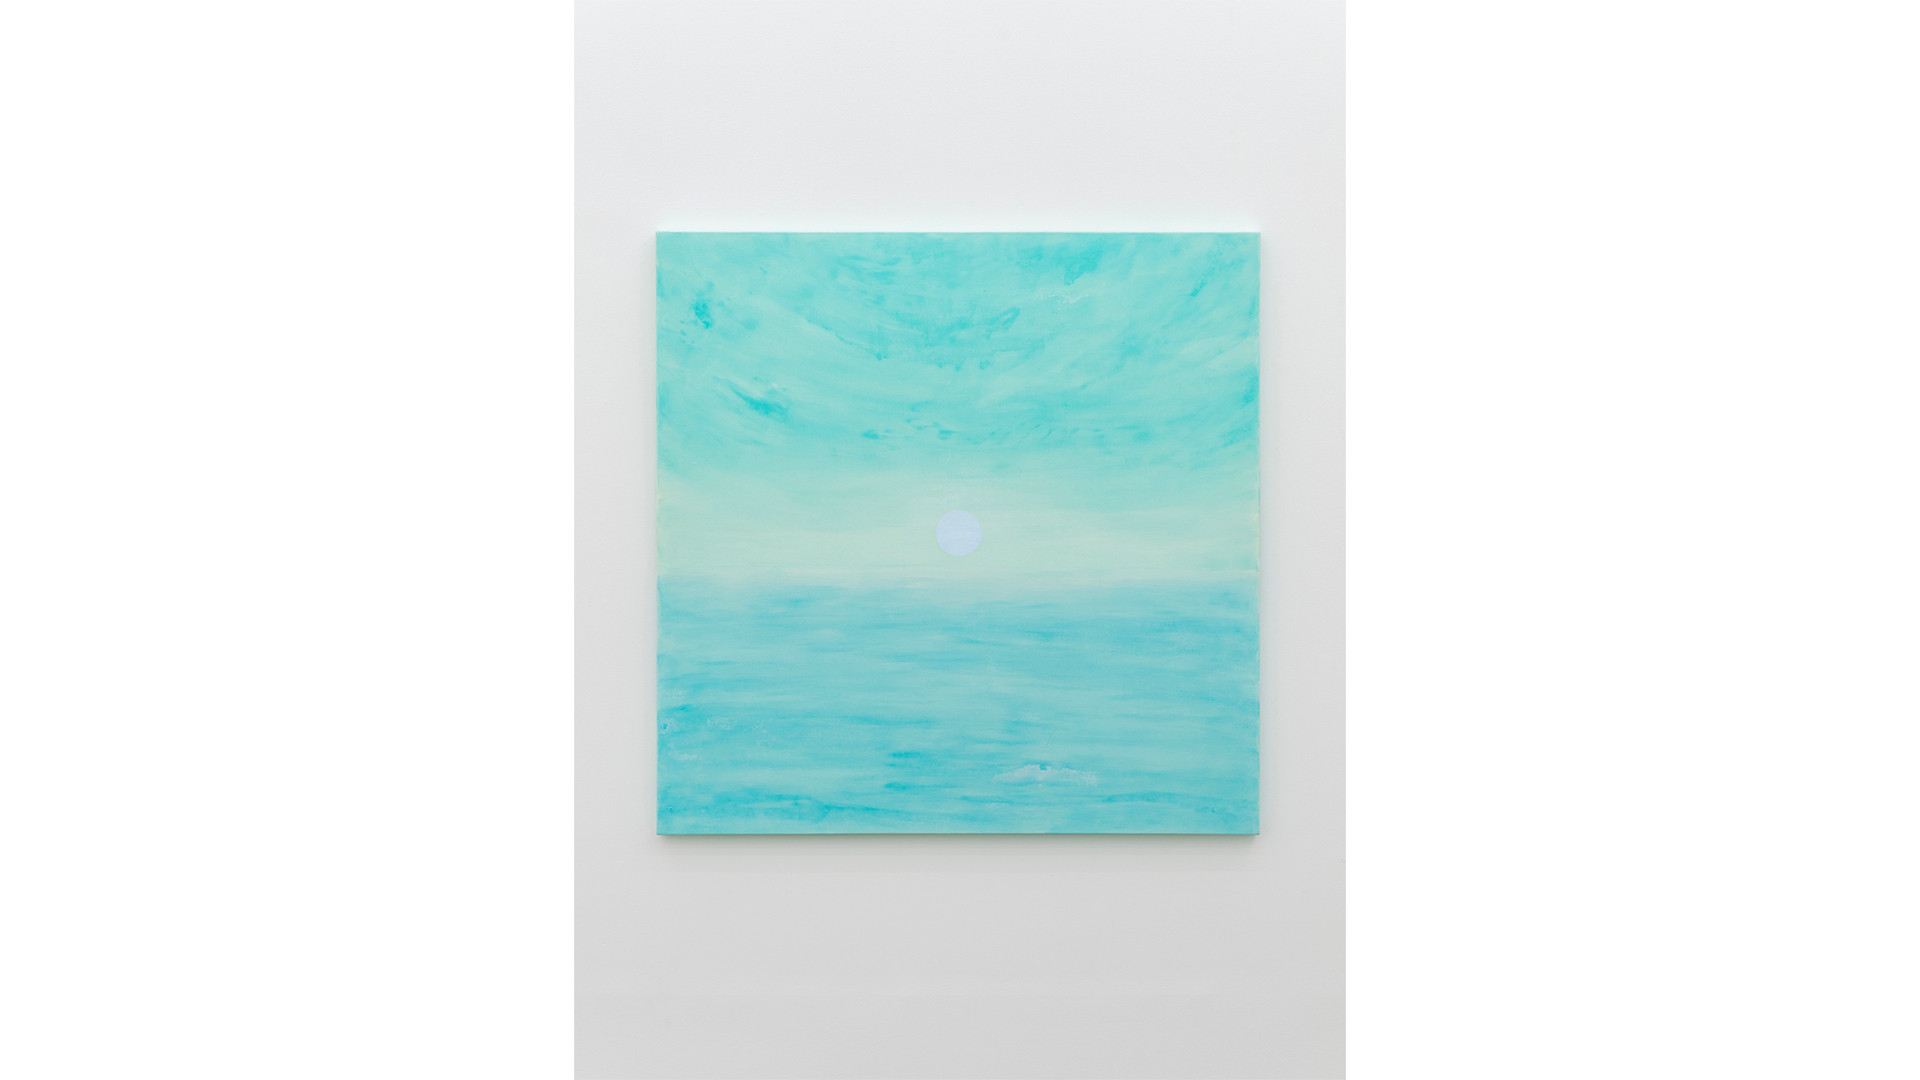 A Particle over the Horizon, 2020, acrylic & phosphorescent pigment on canvas, 137 x 137 cm